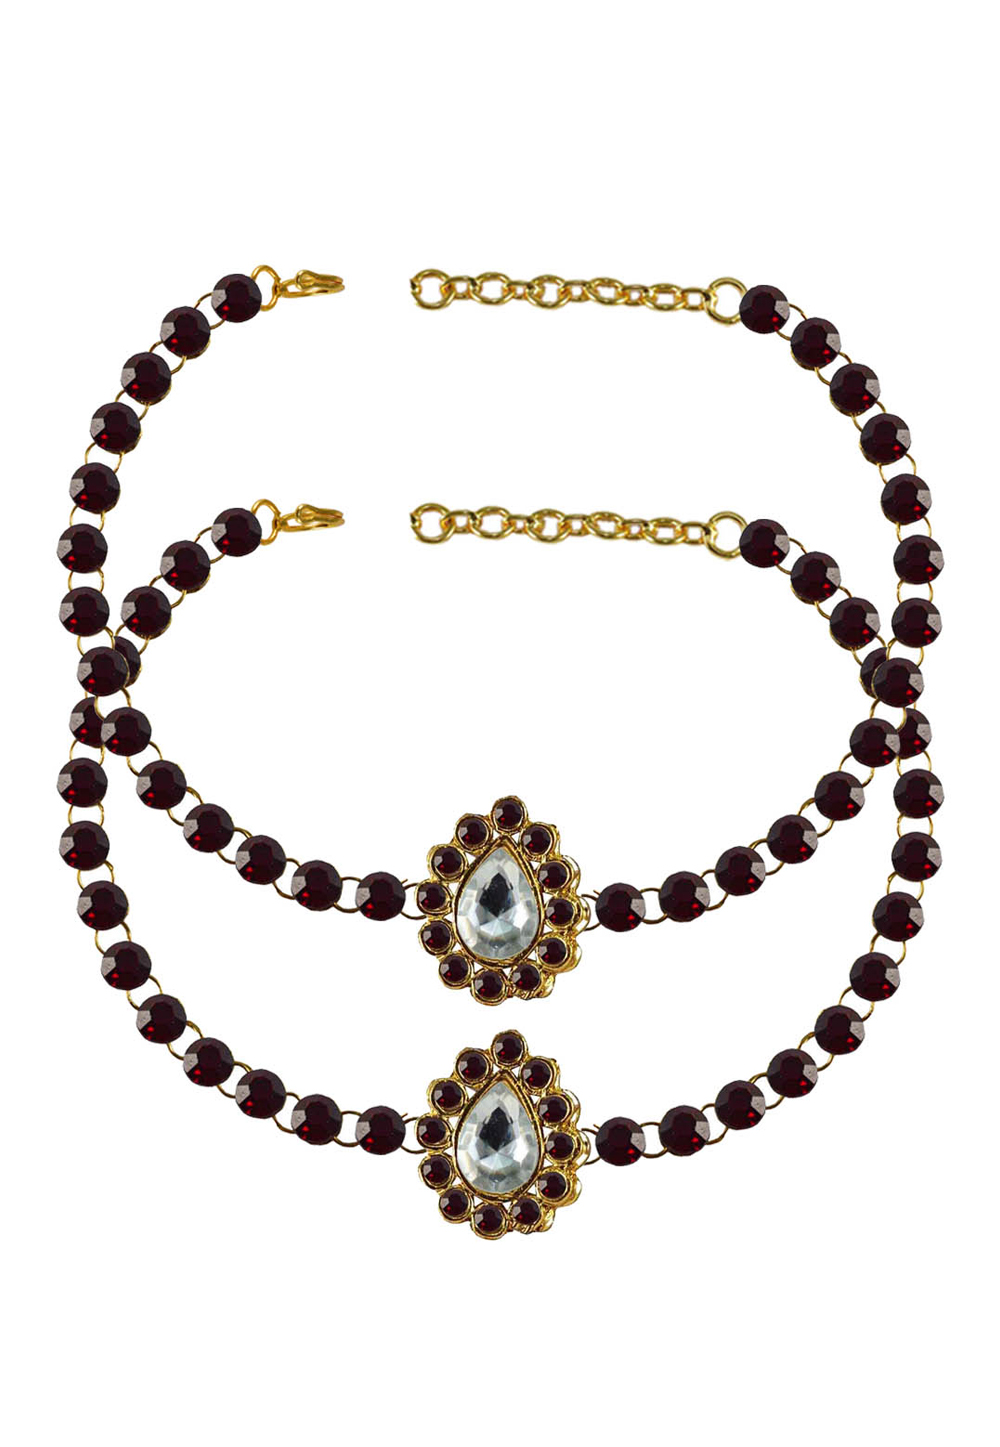 Maroon Brass Gold Plated Anklets 171315